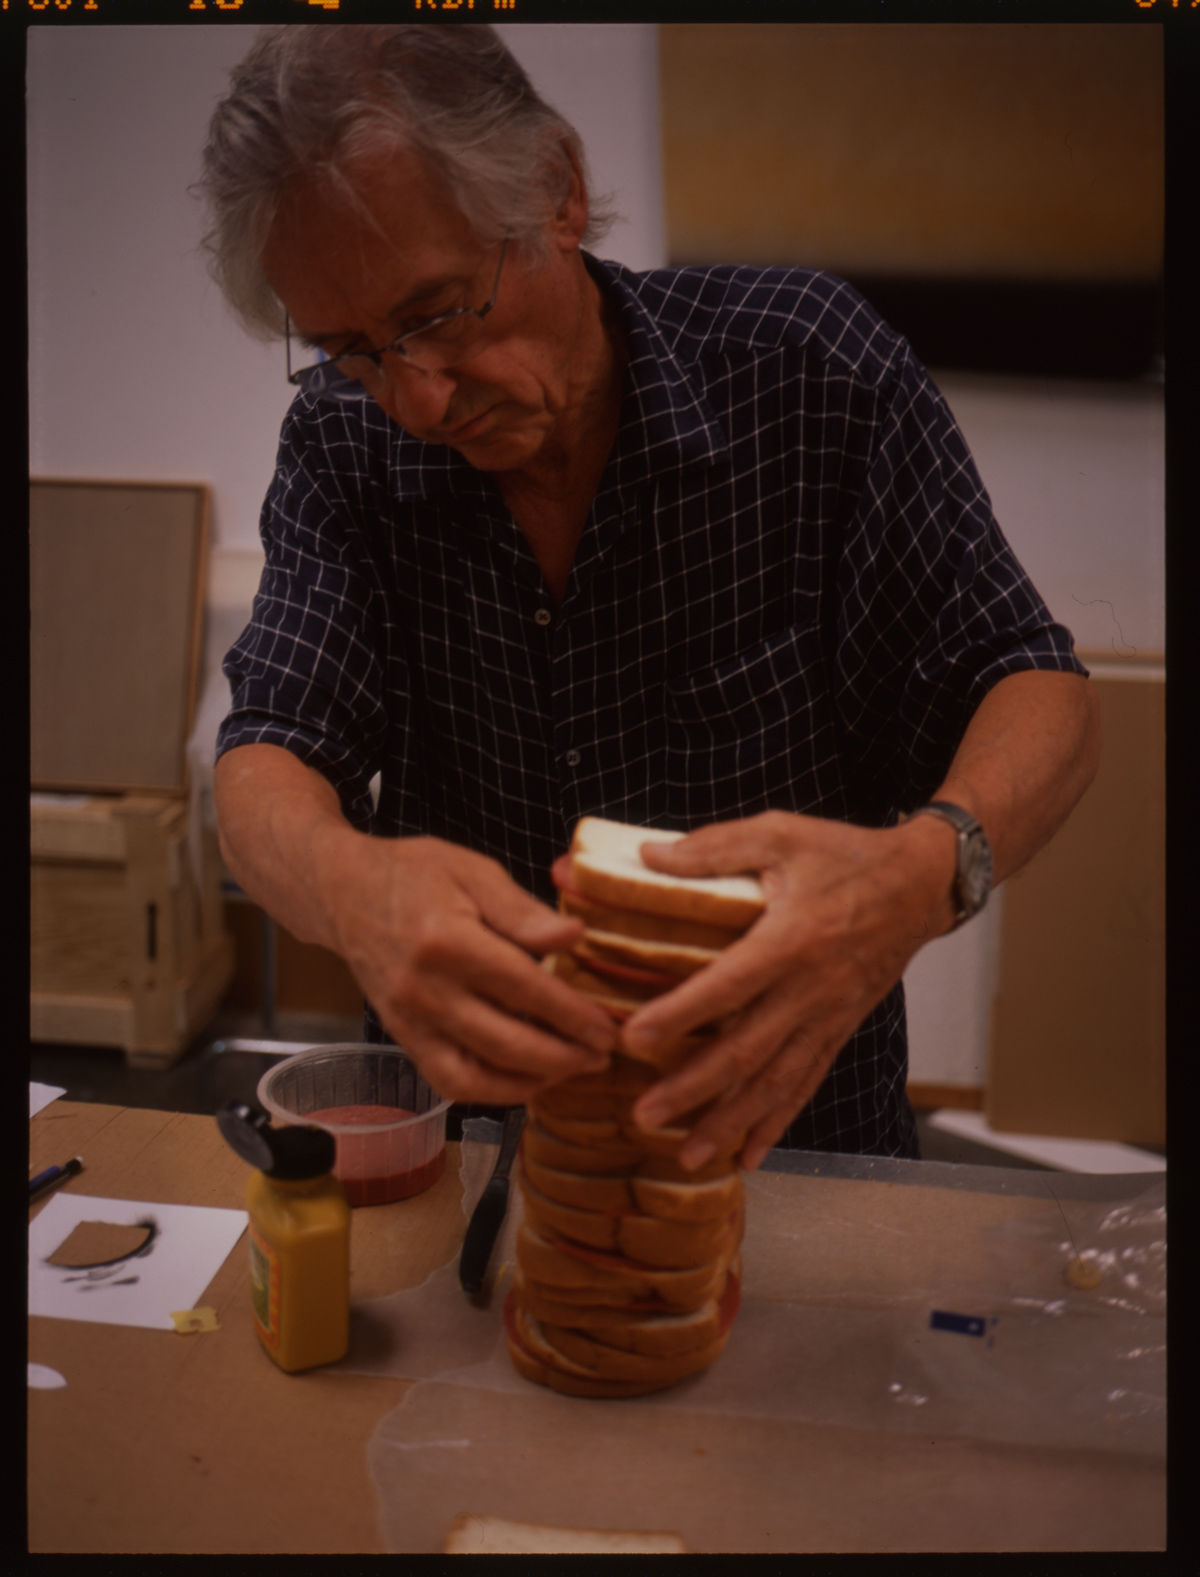 Ed Ruscha (American, b. 1937), Ed Ruscha making a sandwich to be photographed for his book On the Road: An Artist Book of the Classic Novel by Jack Kerouac, ca. 2008 or 2009. Color transparency, 4 x 5.6 cm. © Ed Ruscha. For Ruscha's most recent book project, published in 2009, he created an illustrated version of Jack Kerouac's seminal beat novel On the Road. The complete text of the novel is reproduced alongside photographs Ruscha made or selected from other sources. Several boxes of material document the process from conception to publication, and include contact sheets, negatives, and transparencies for all the images from the book that Ruscha made himself (including this sandwich), as well as a few that didn't make the cut.